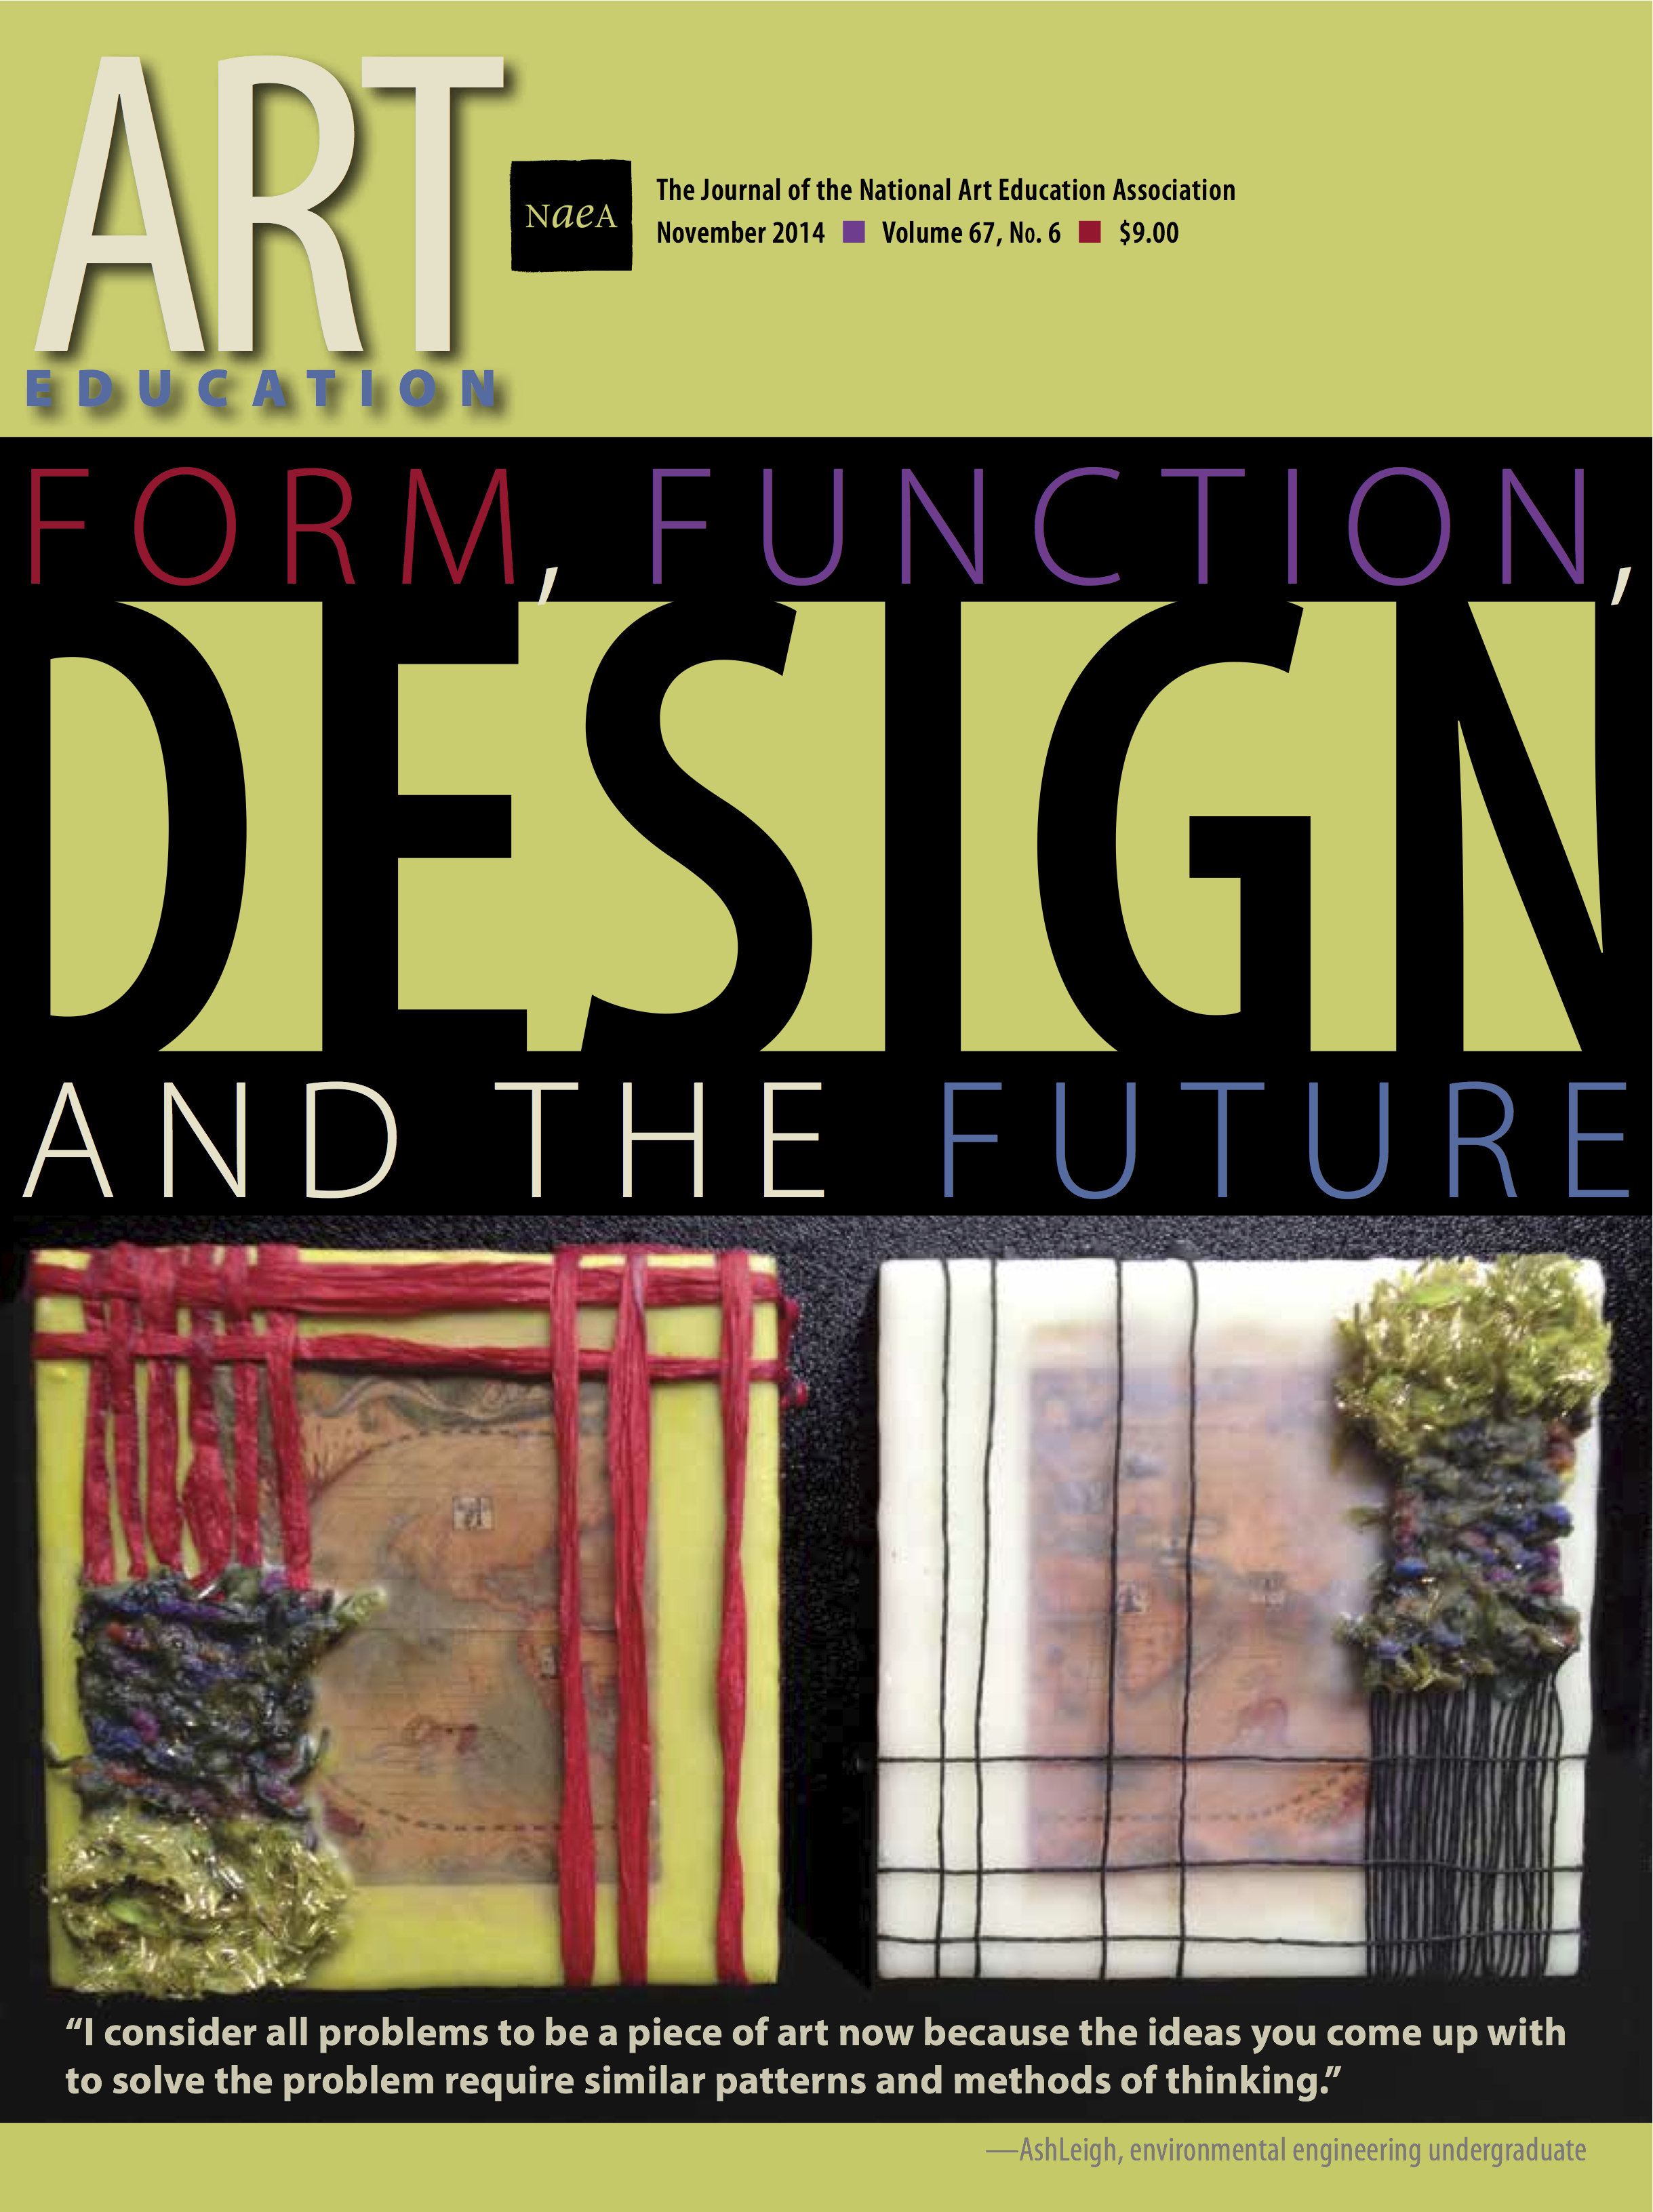 Art Education Journal Nov 2014 Cover Featuring Artwork by Dr. Baxter